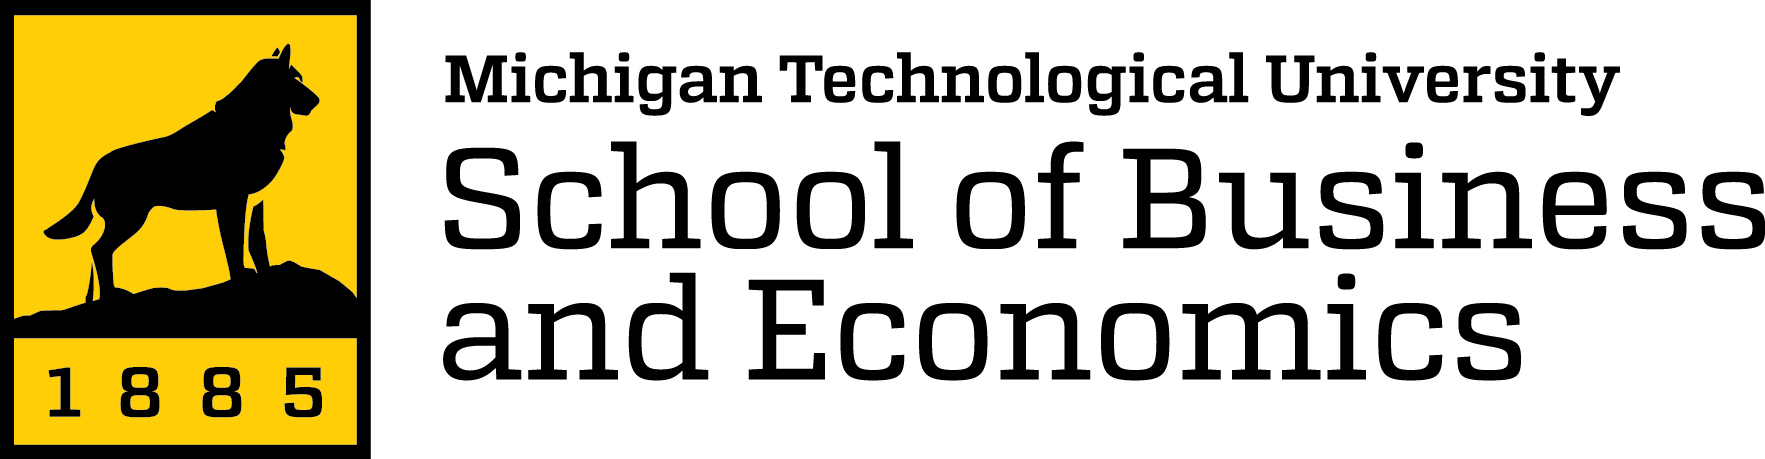 Michigan Technological University School of Business and Economics